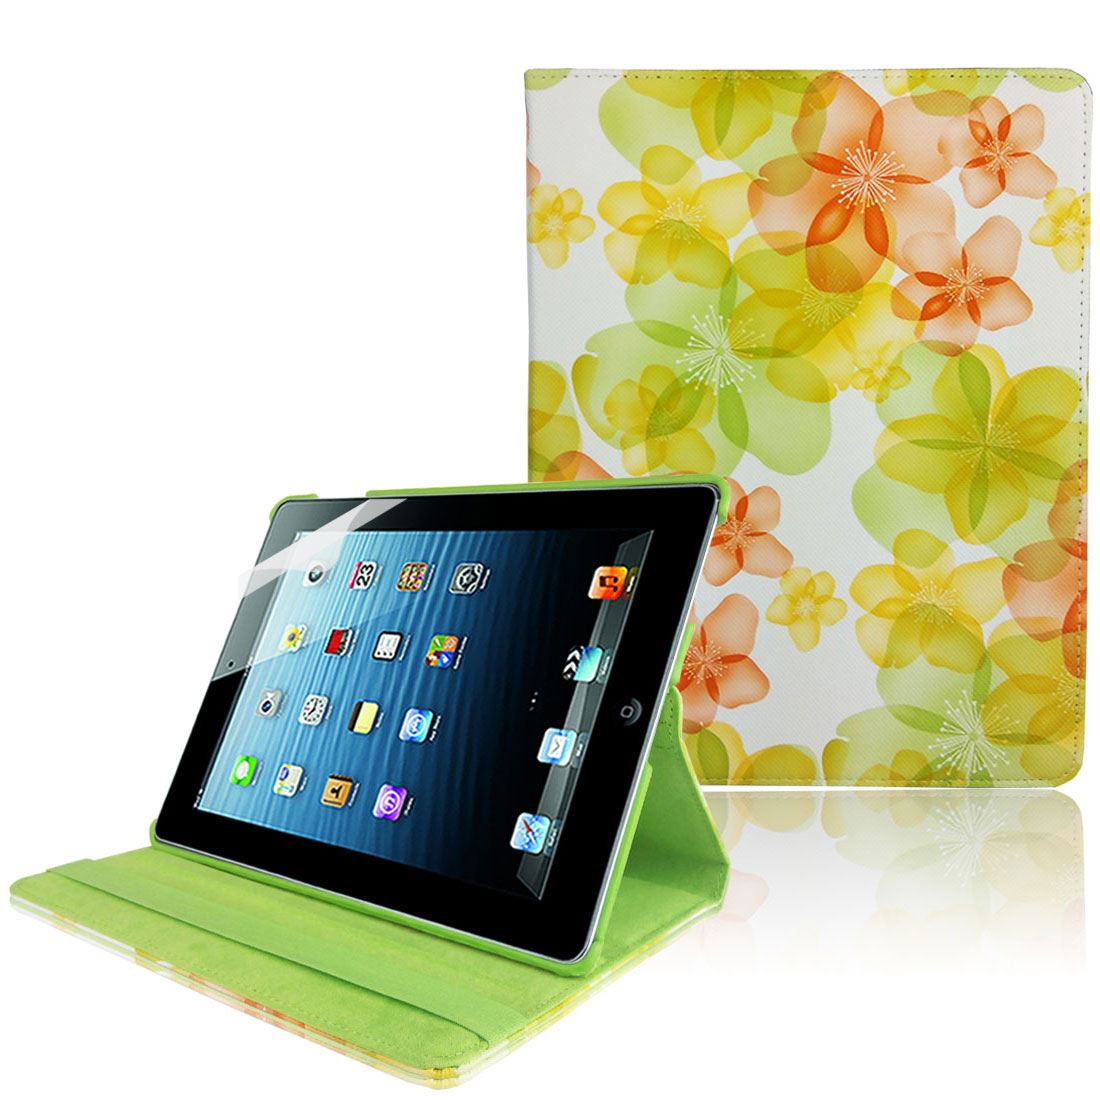 360 Degree PU Leather Flip Case Cover For iPad 2 3 4 Free Screen Protector